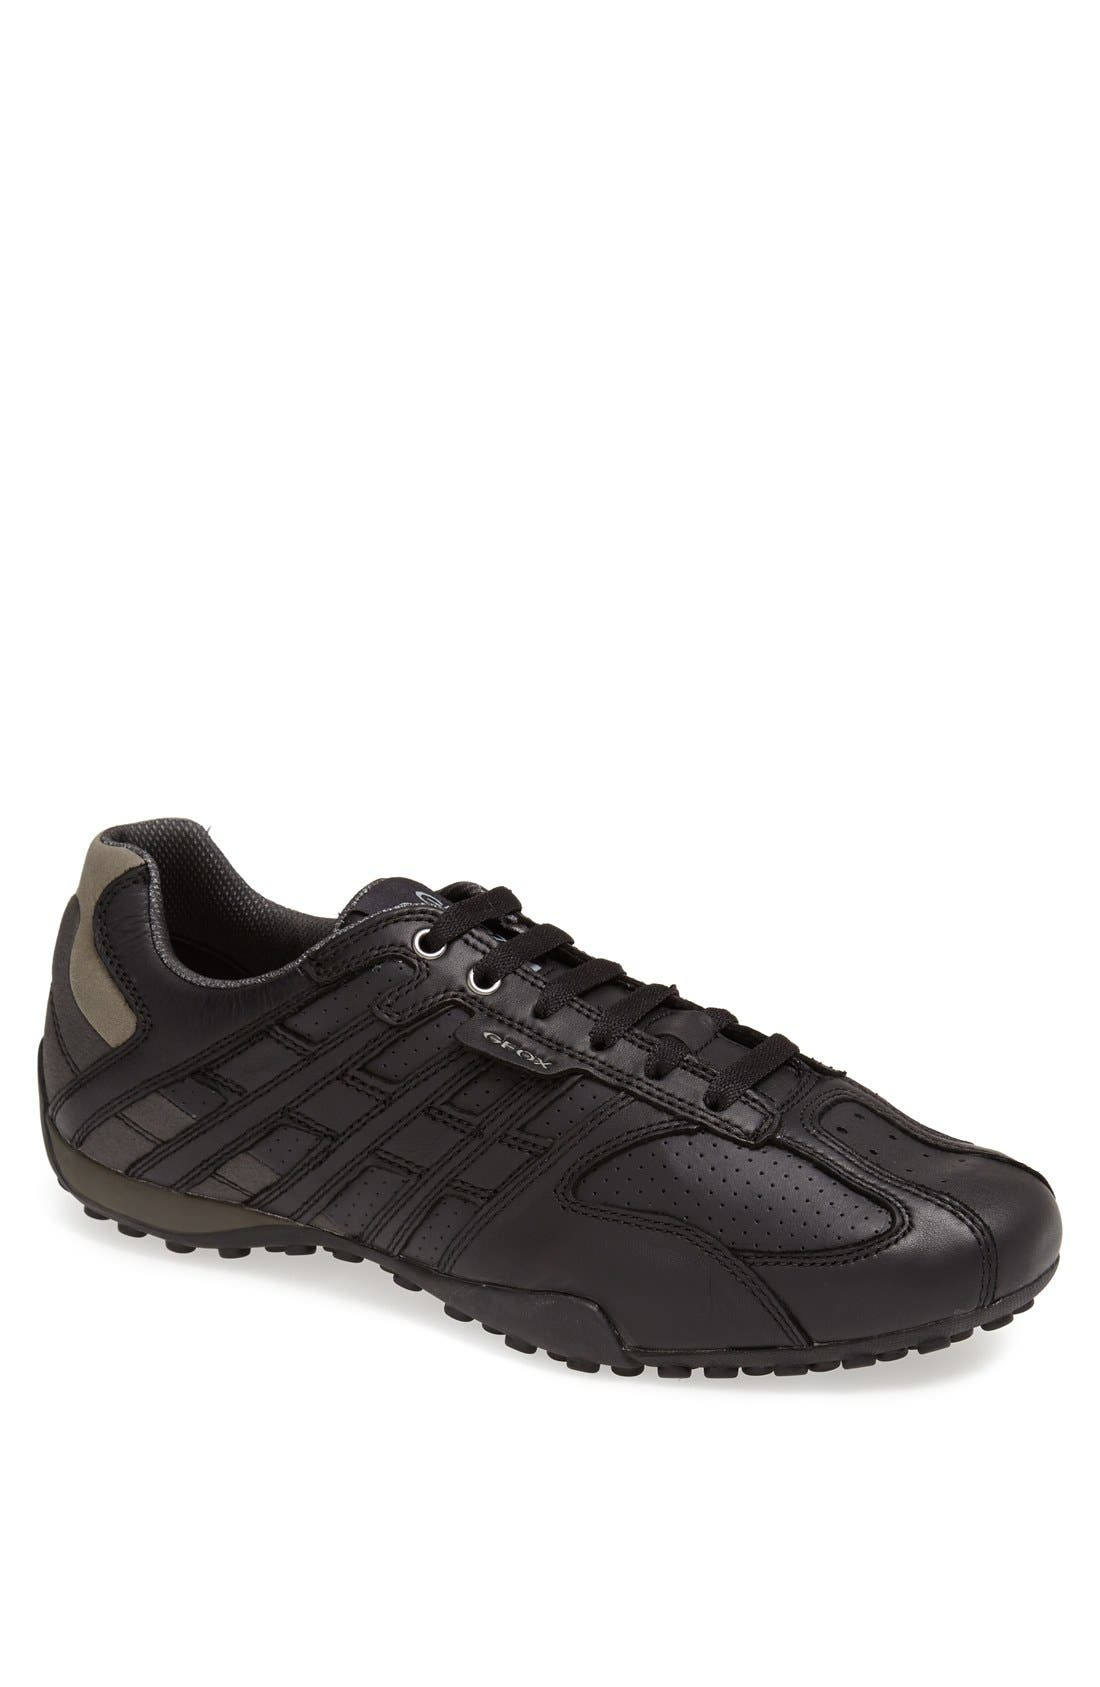 'Snake 92' Sneaker,                         Main,                         color, Black